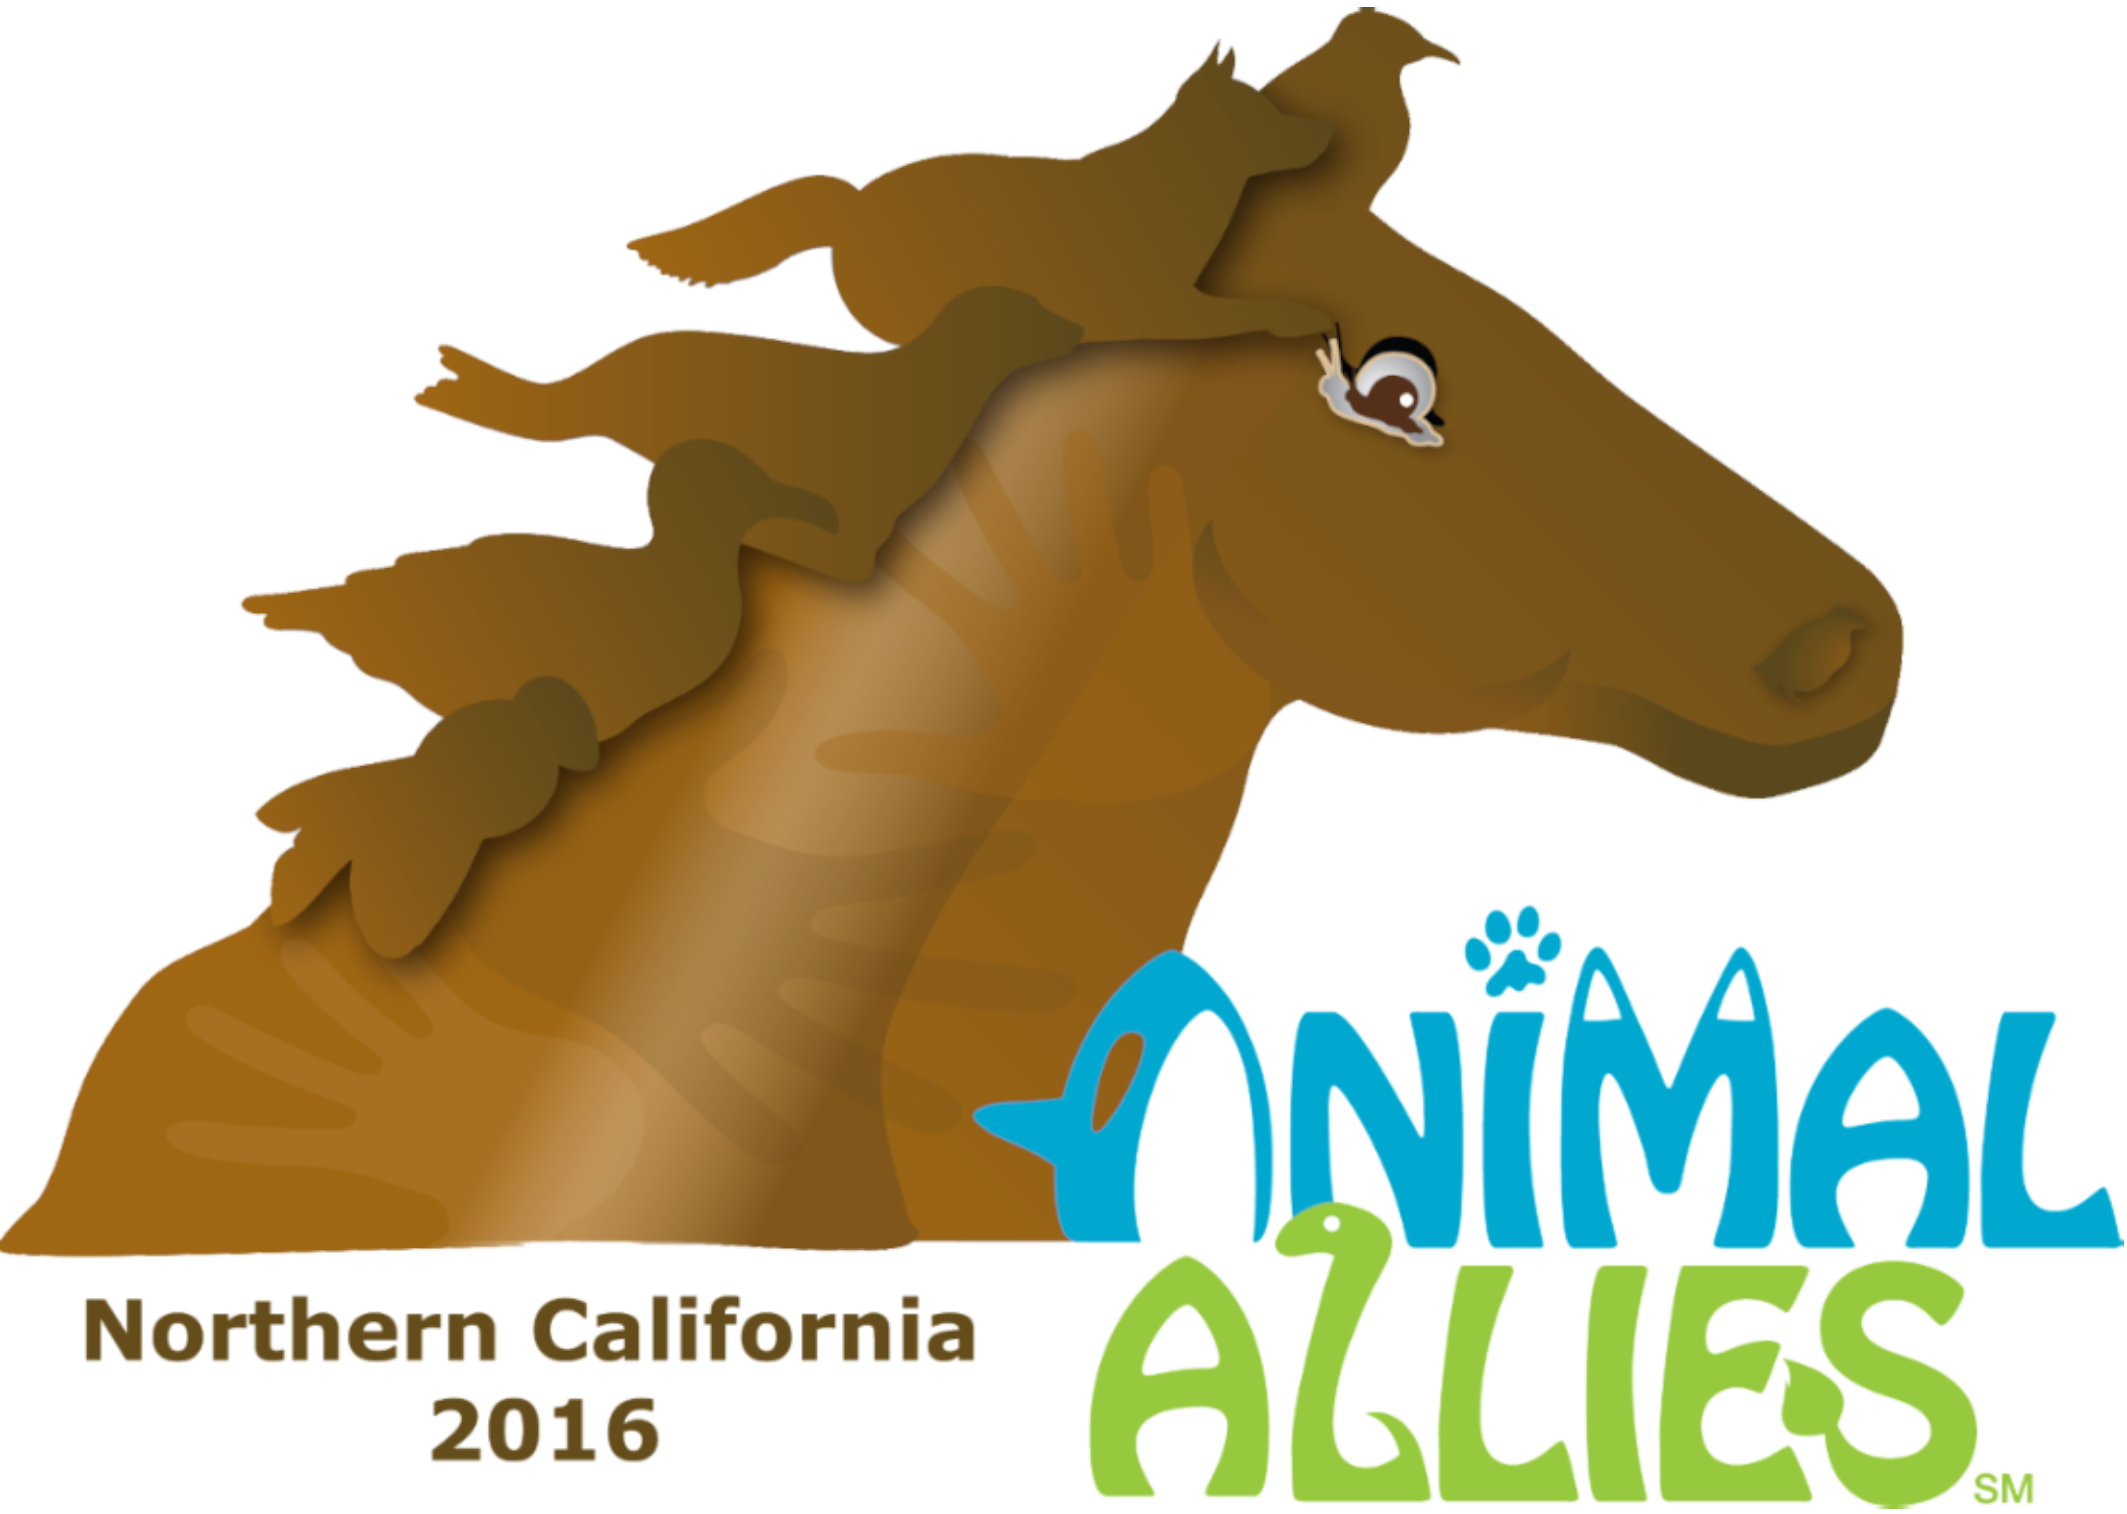 Evaporation clipart afternoon activity. Norcalfll animal allies